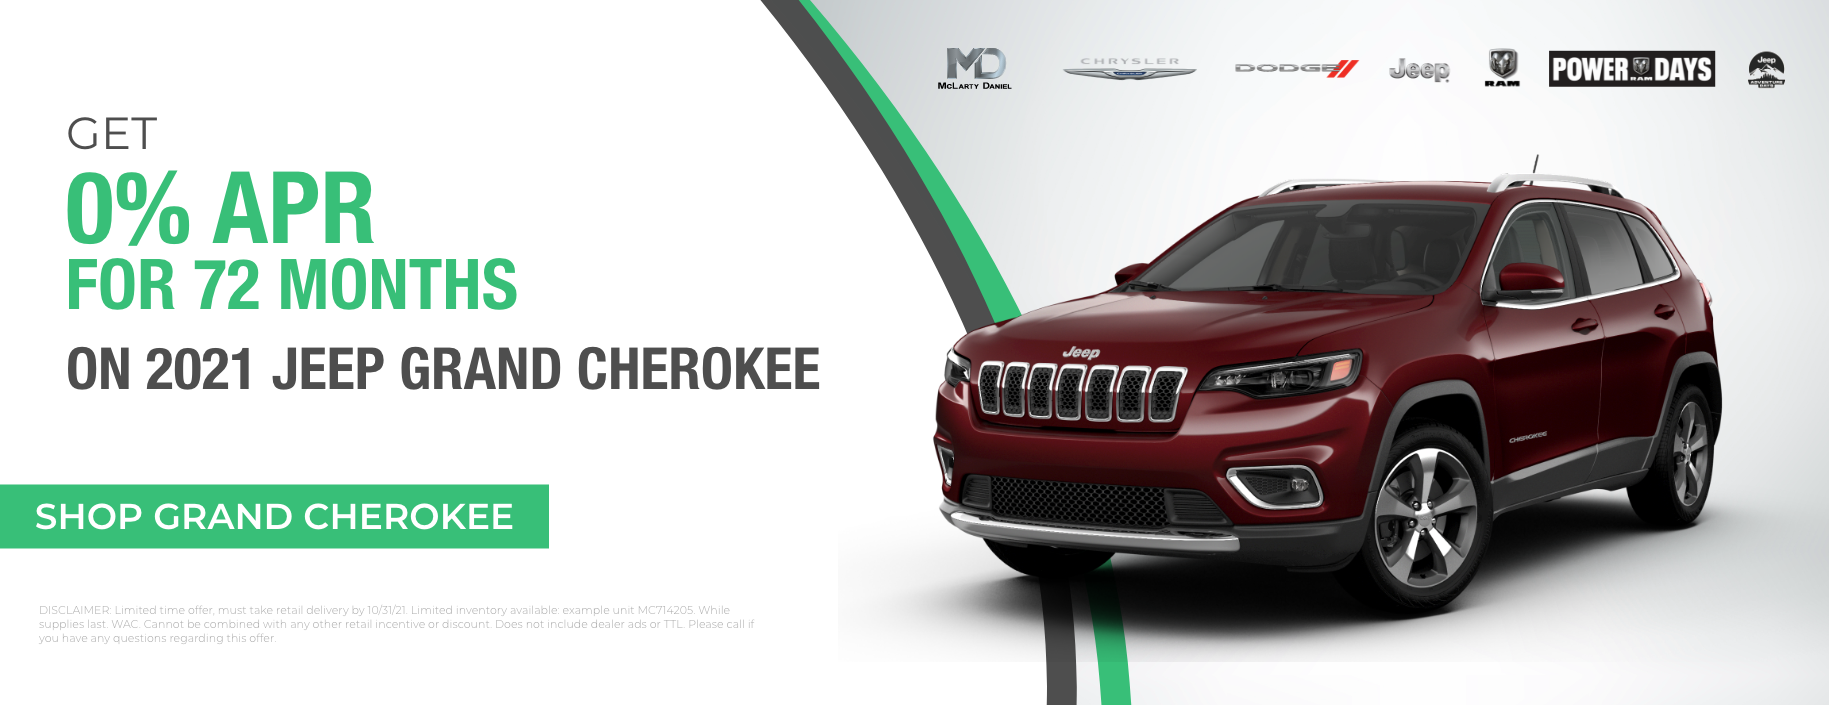 Get 0% for 72 months on 2021 Jeep Grand Cherokee!